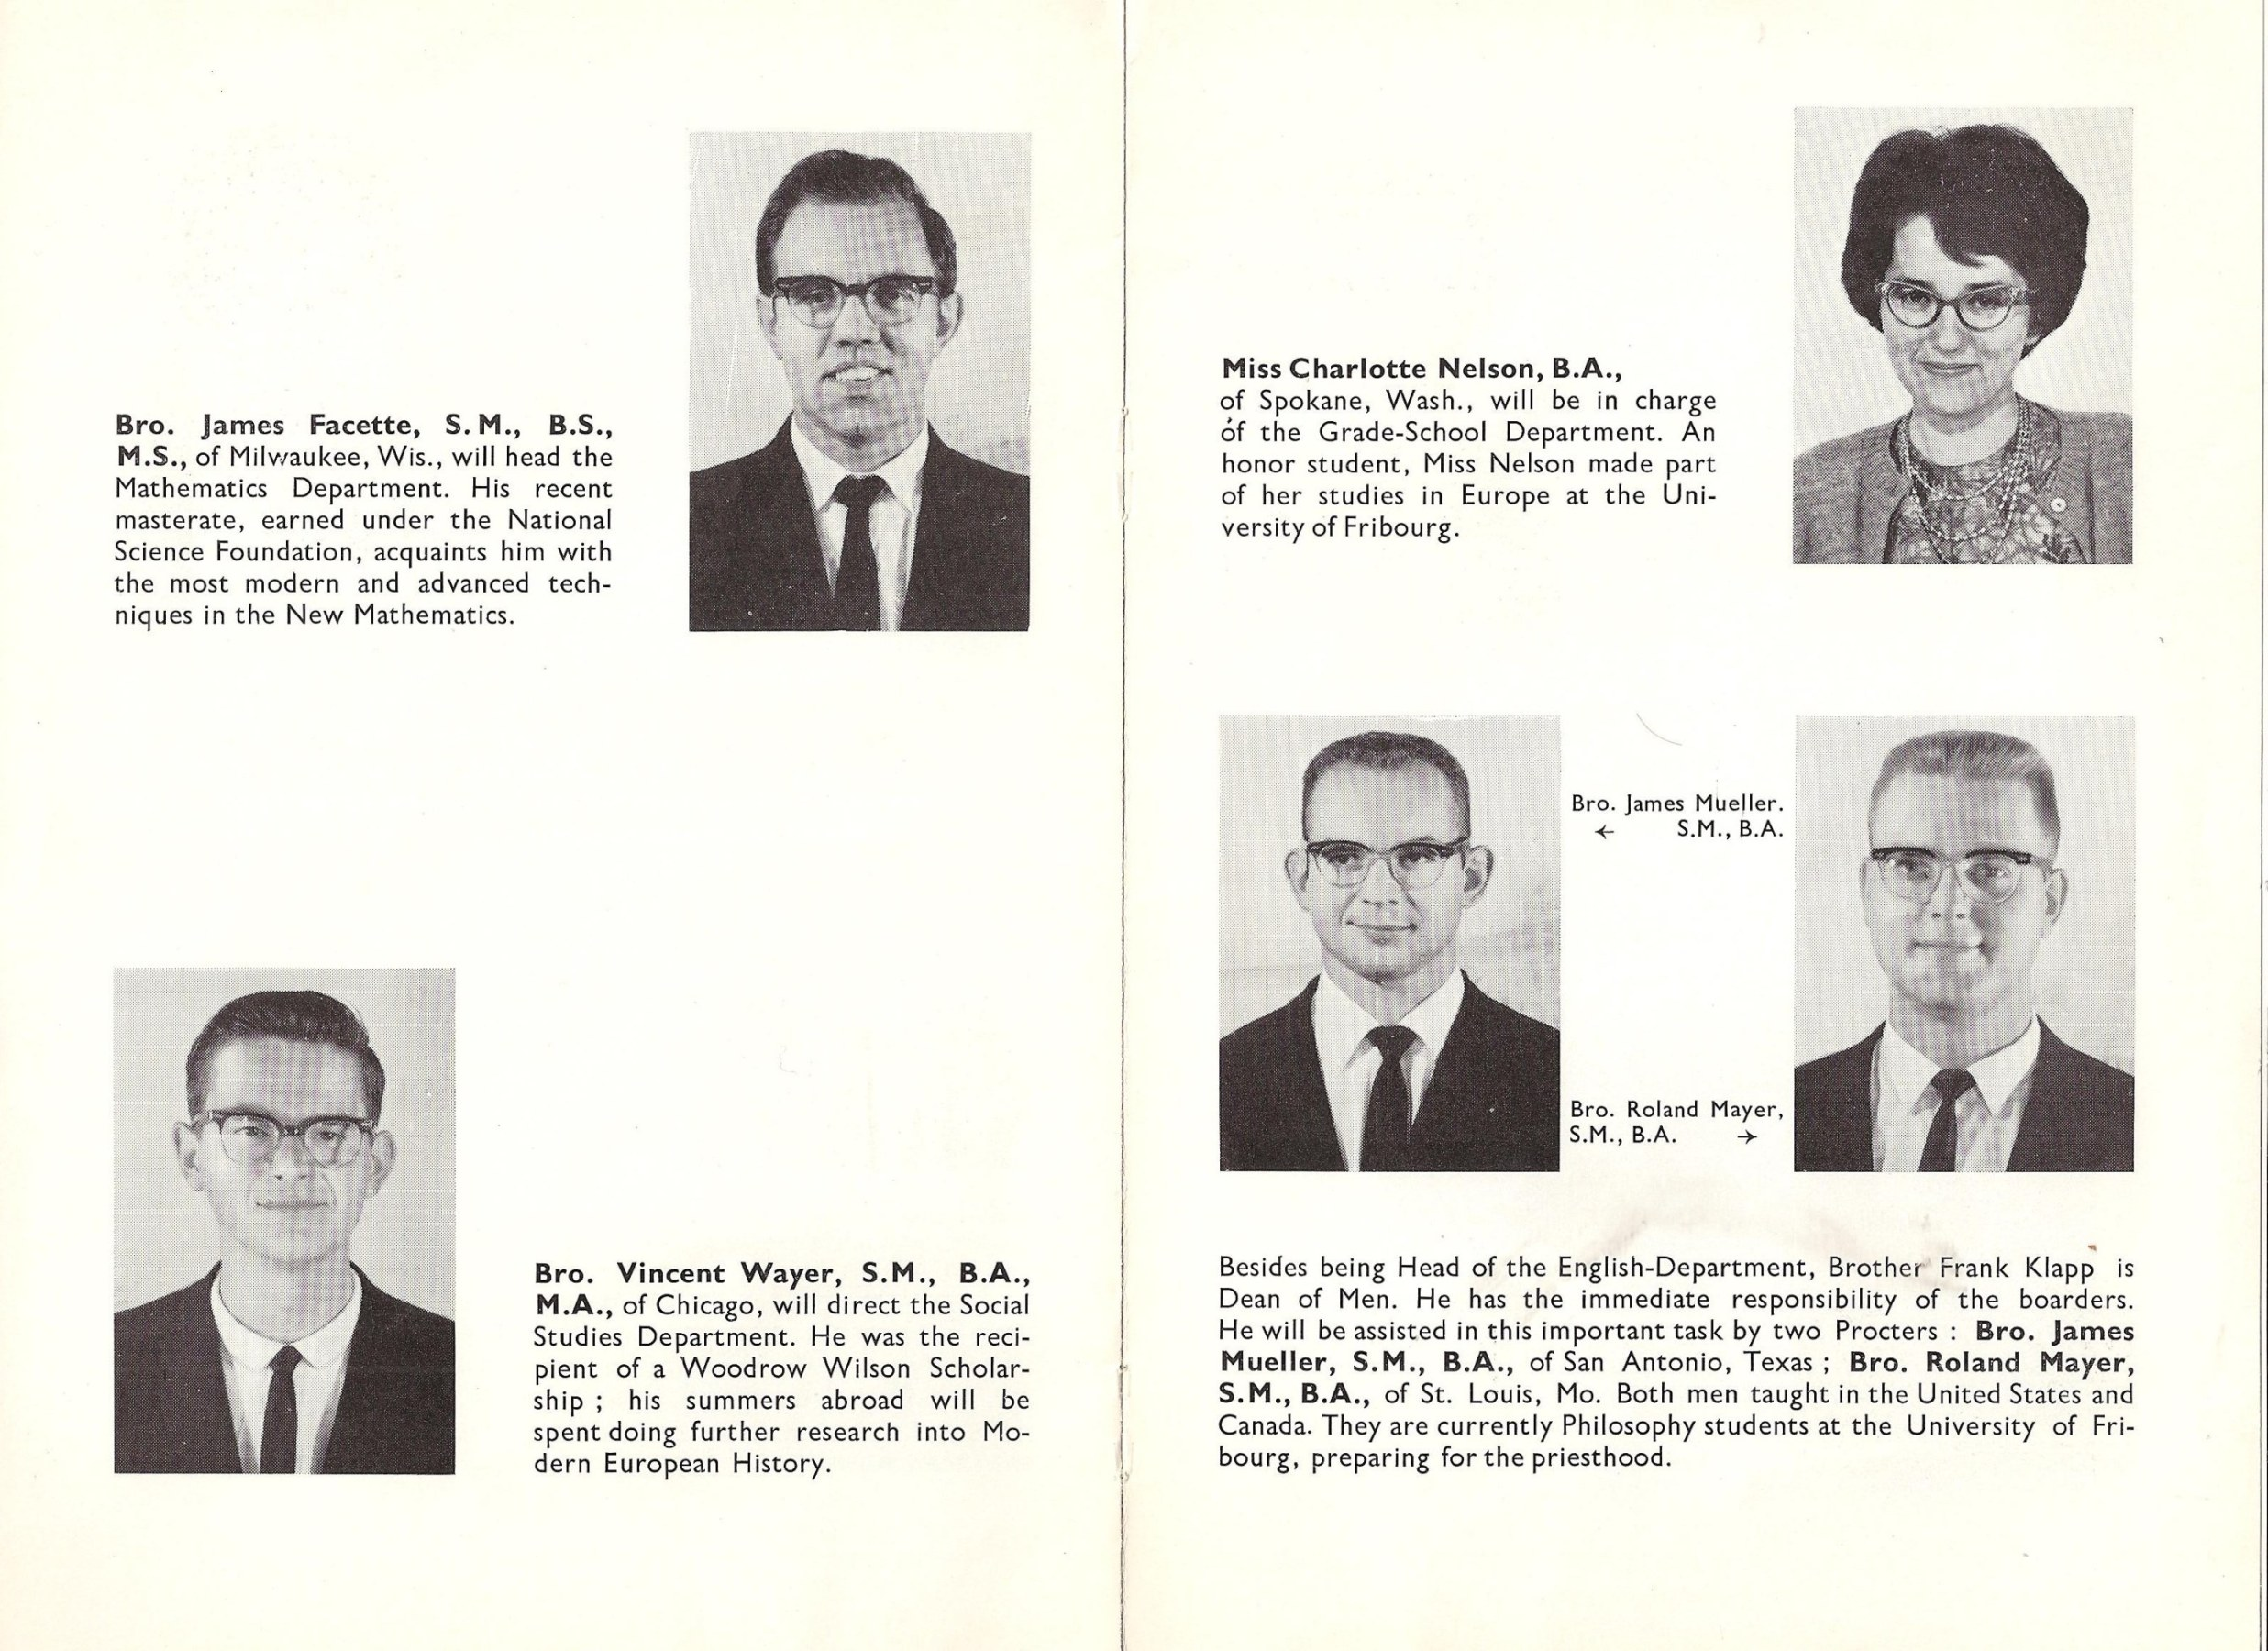 Image: Pages 7 and 8 of Villa Saint Jean November 1962 NEWSLETTER